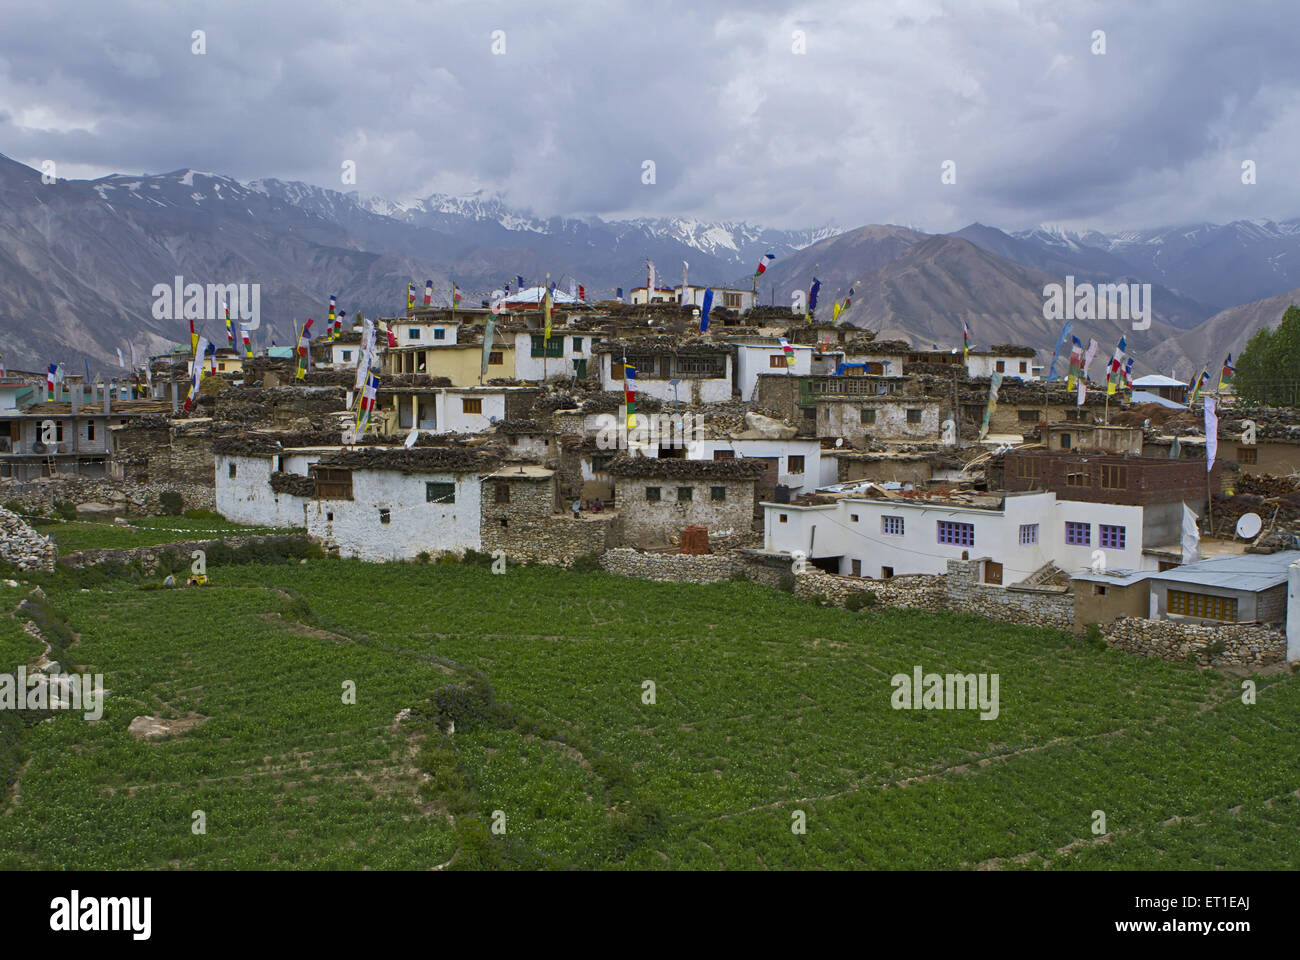 nako village himachal pradesh India - Stock Image